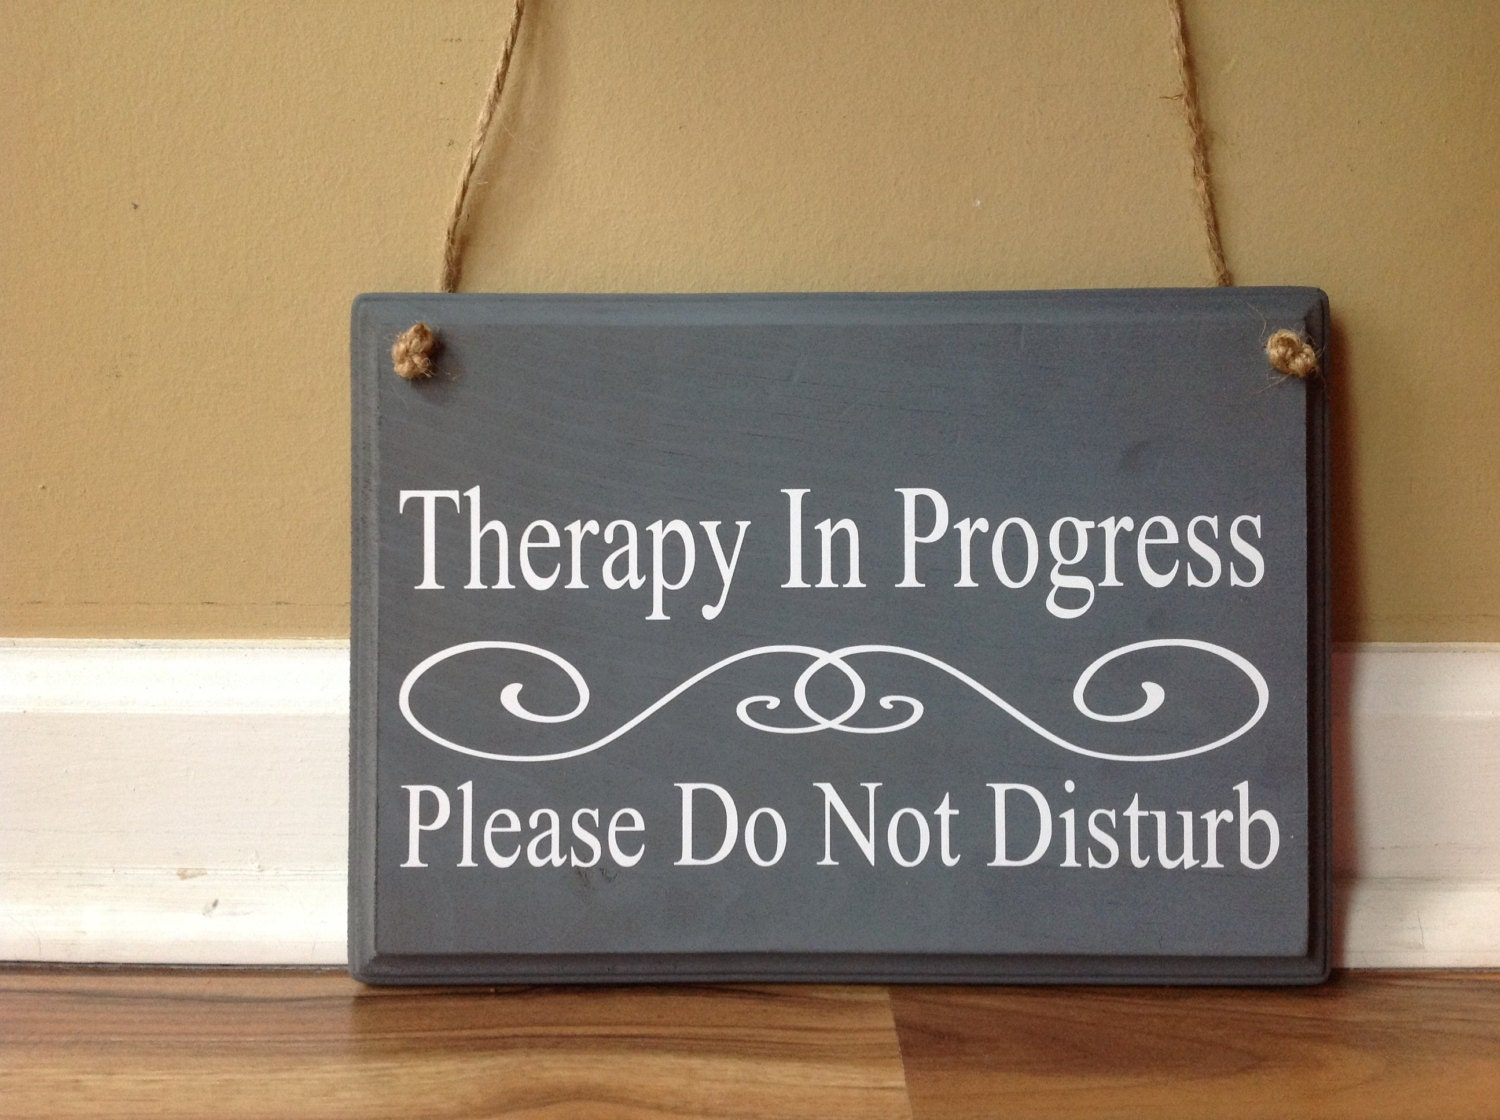 Therapy Office Decor Therapy In Progress Please Do Not Disturb In Session Do Not